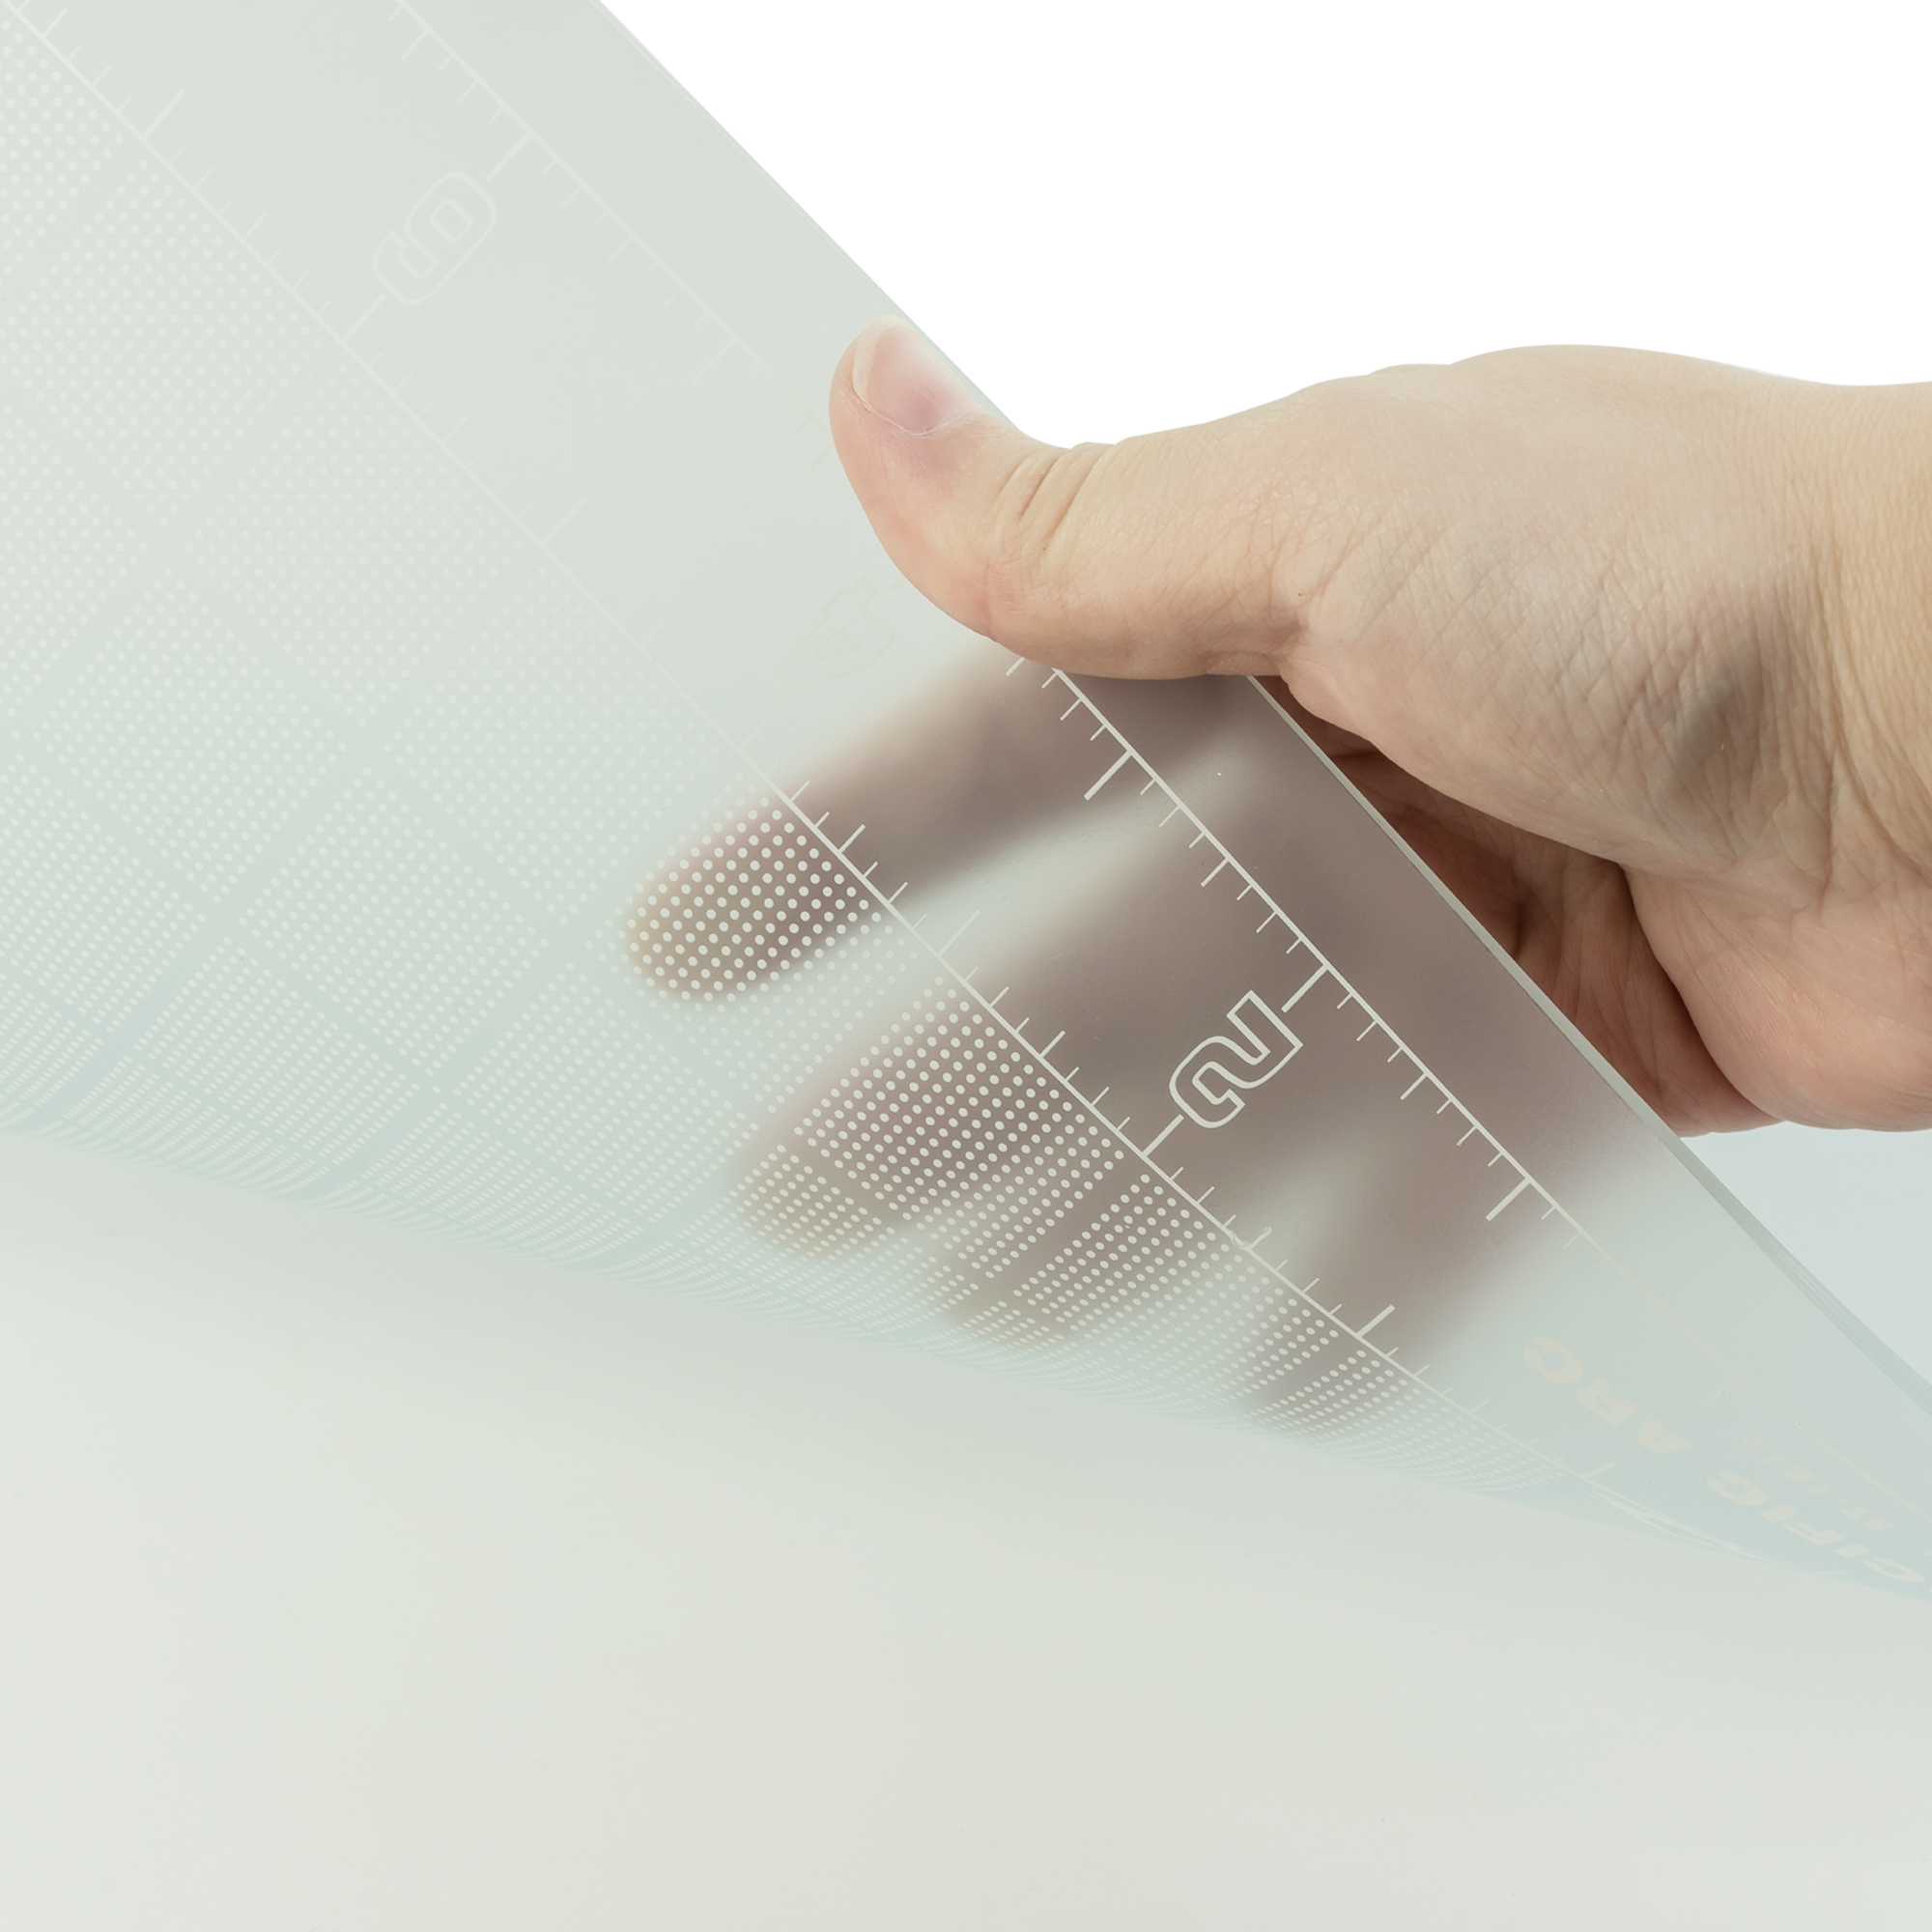 translucent cutting matt from pacific arc will make it easy to measure and layout your work